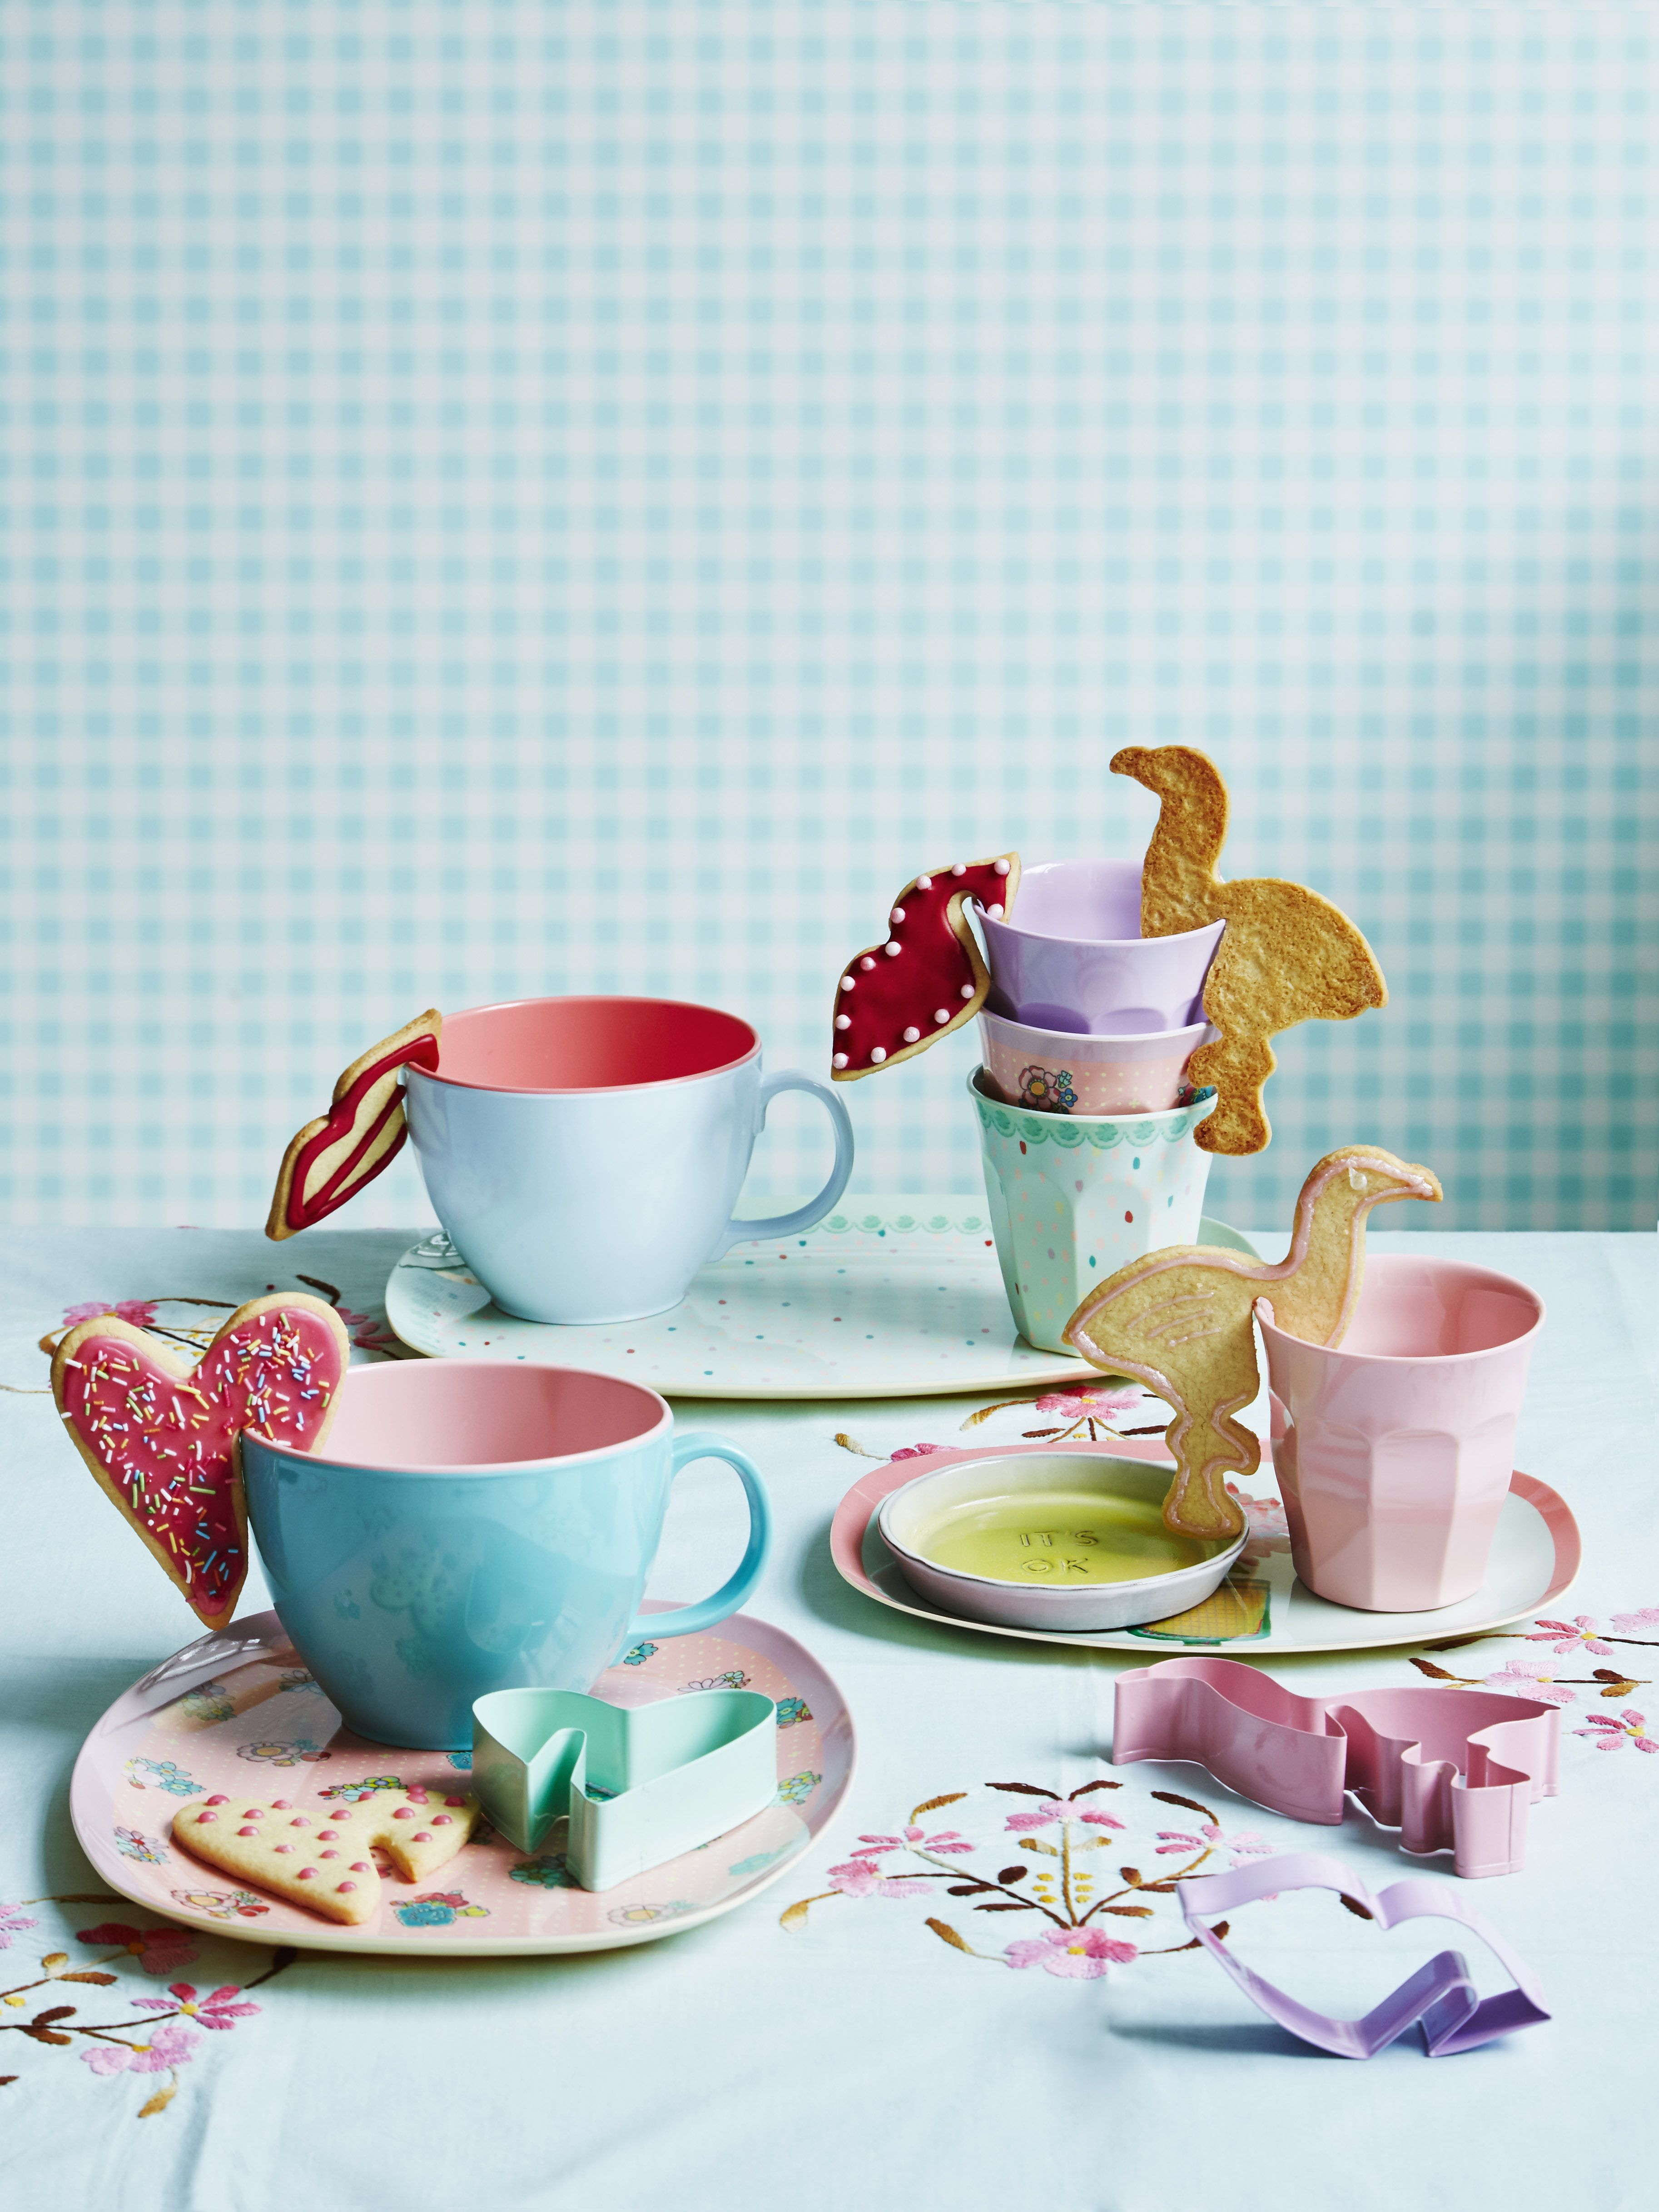 Melamine Cups and Plates - AW16 - Home Decor For Life  sc 1 st  Pinterest & Melamine Cups and Plates - AW16 - Home Decor For Life | Other Great ...